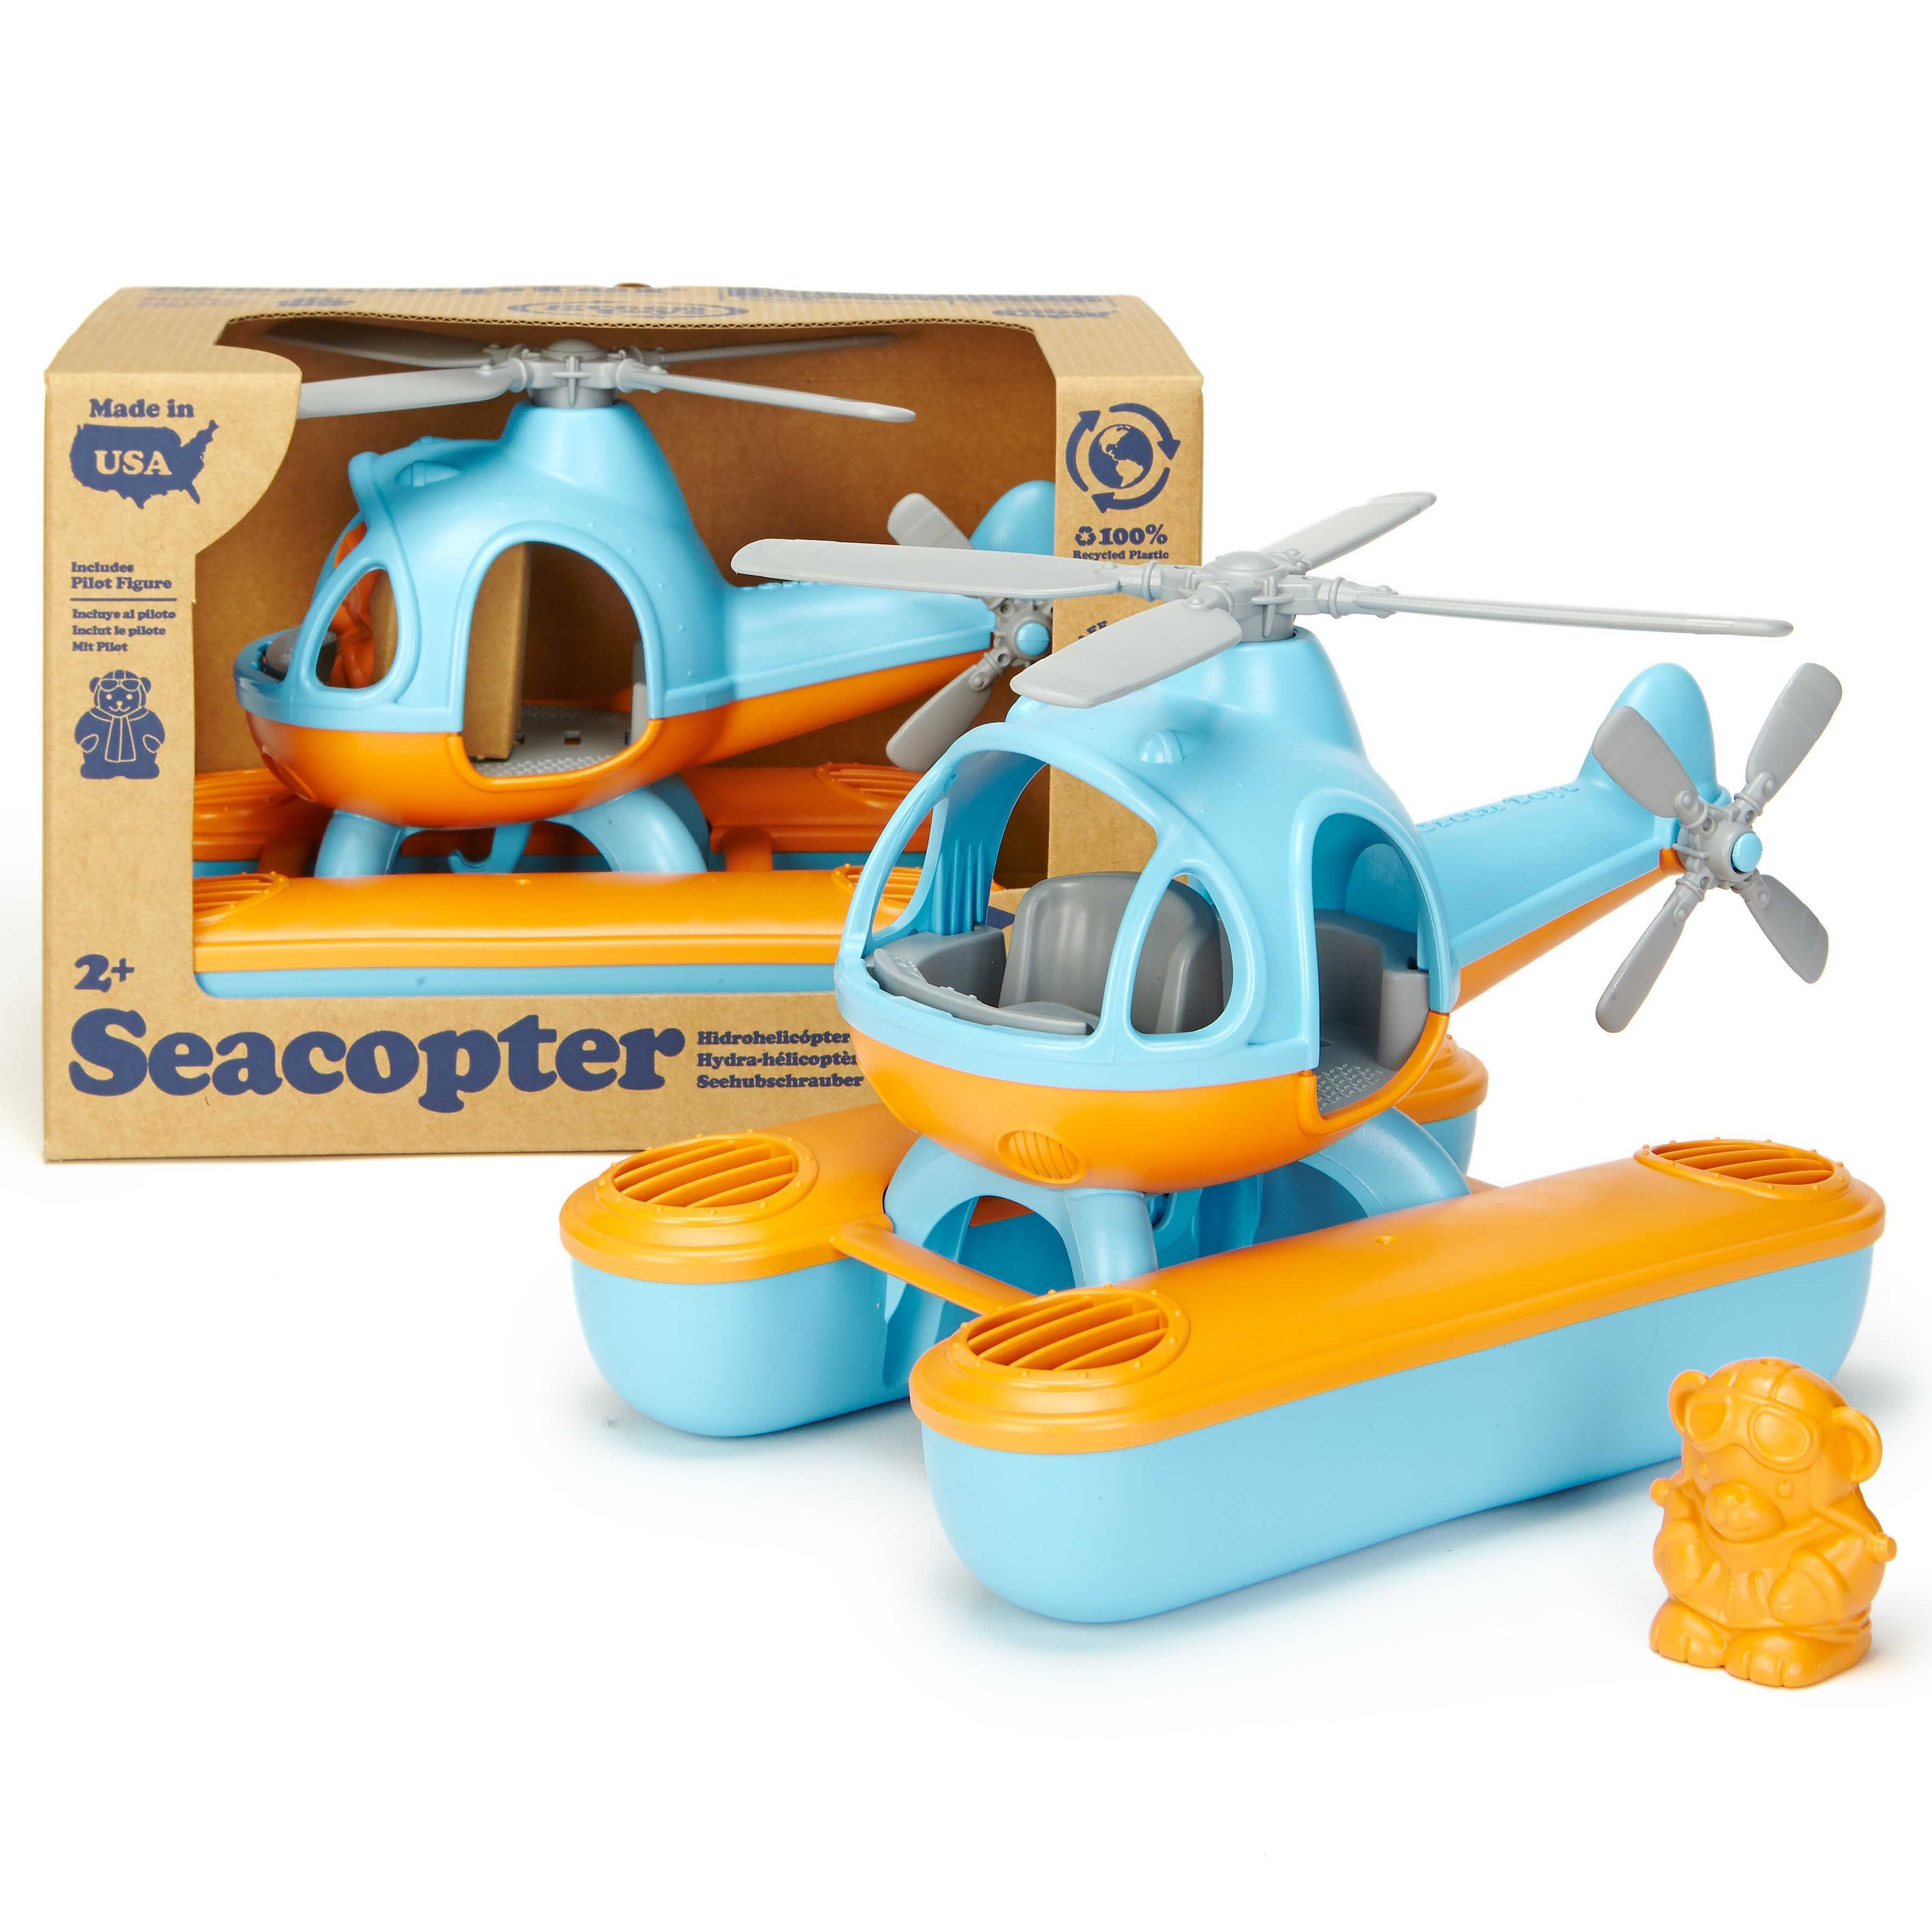 Seacopter (made from 100% recycled milk cartons)